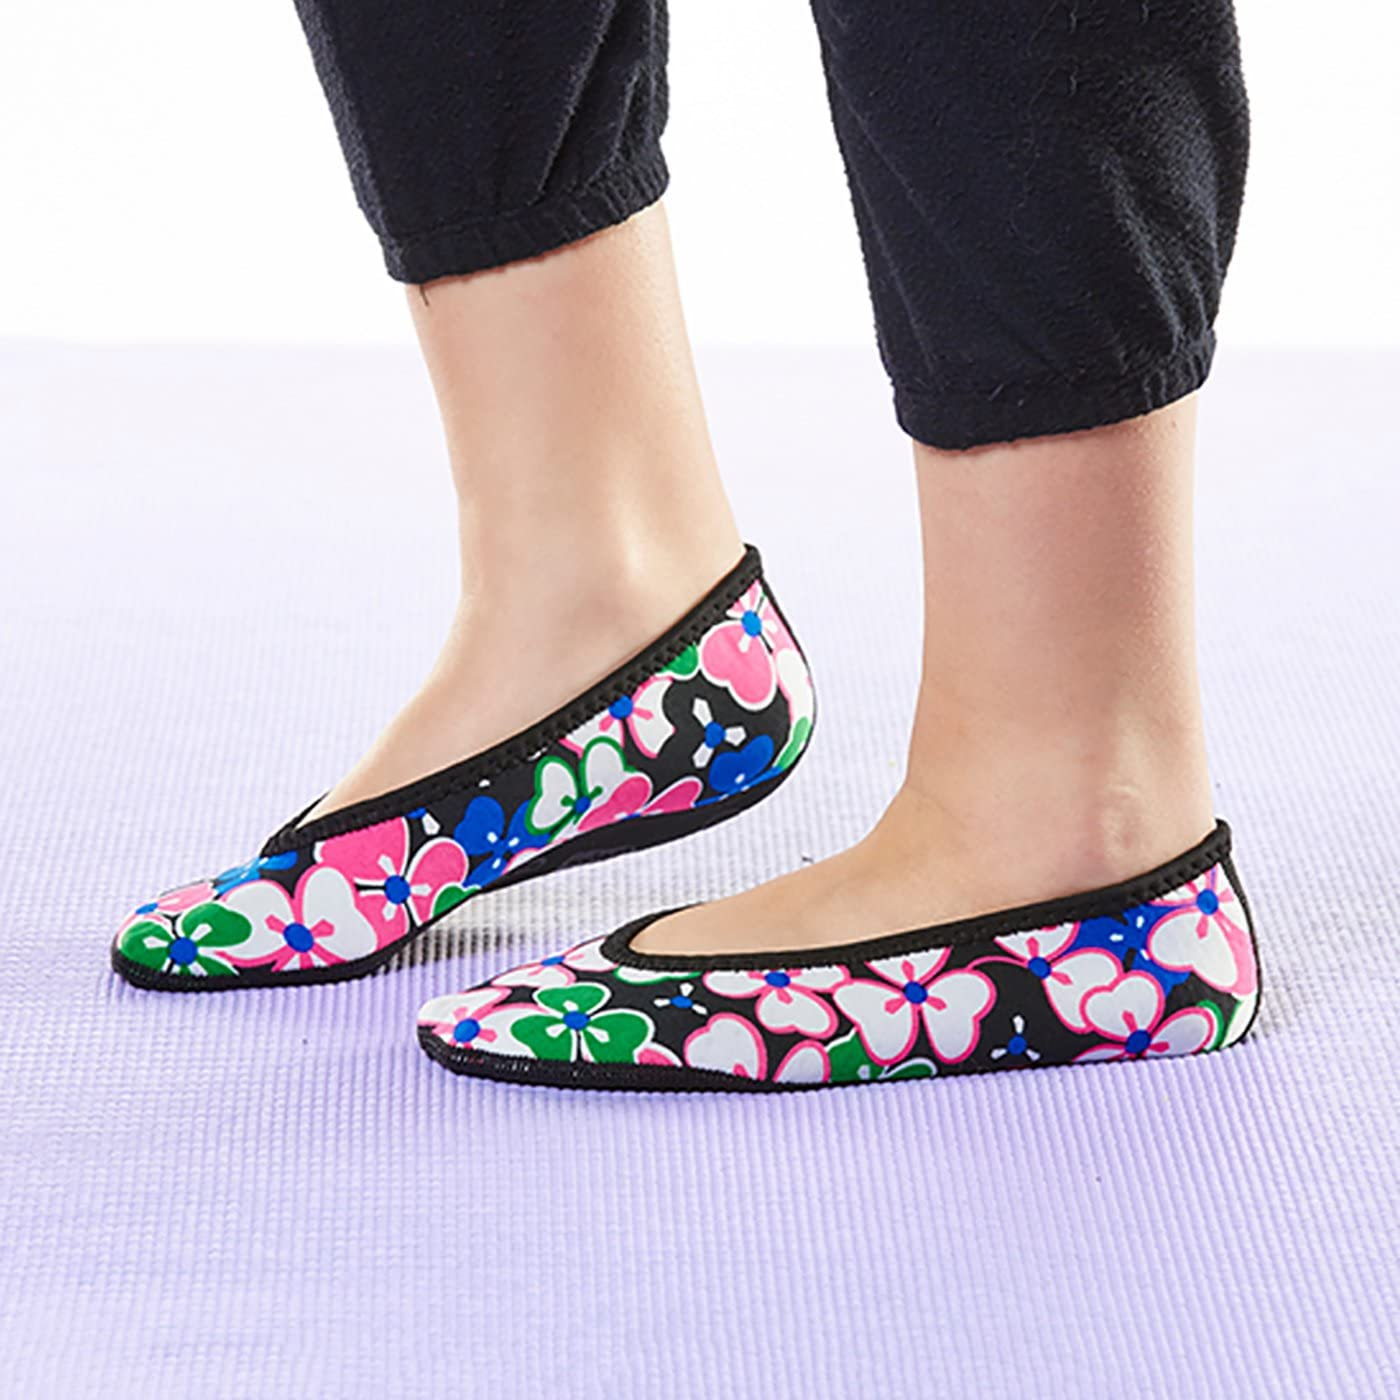 Dance Shoes Indoor Slippers NuFoot Ballet Flats Womens Shoes Travel Slippers /& Exercise Shoes Paisley Best Foldable /& Flexible Flats Large House Shoes Yoga Socks Slipper Socks